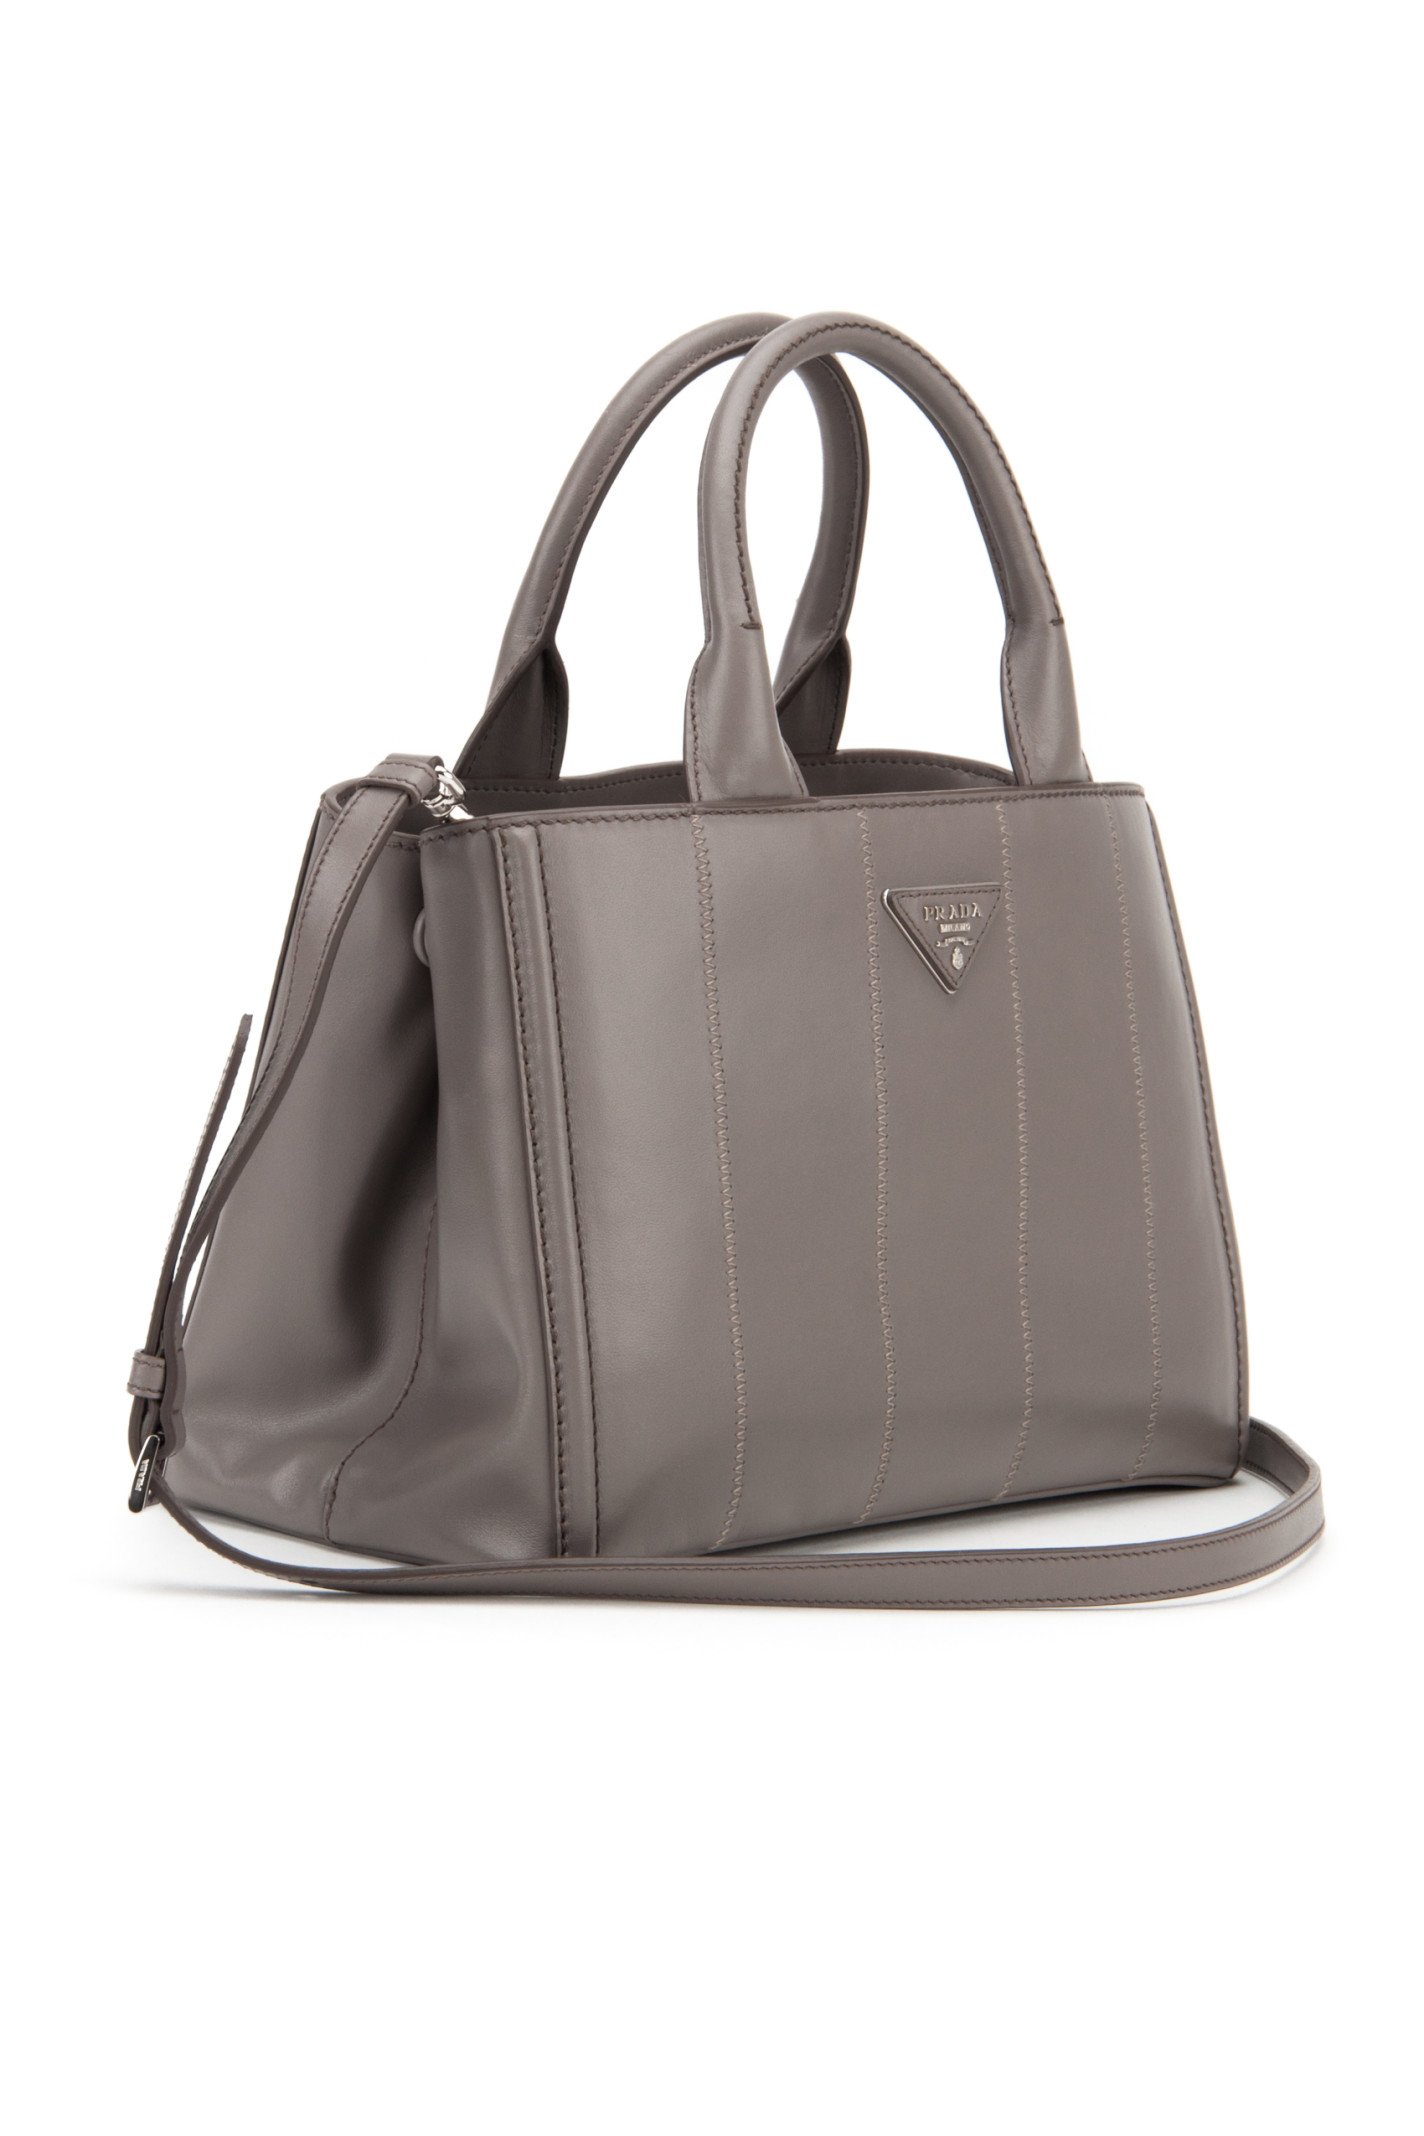 Prada Soft Calf Shopping Bag in Gray (ARGILLA) | Lyst